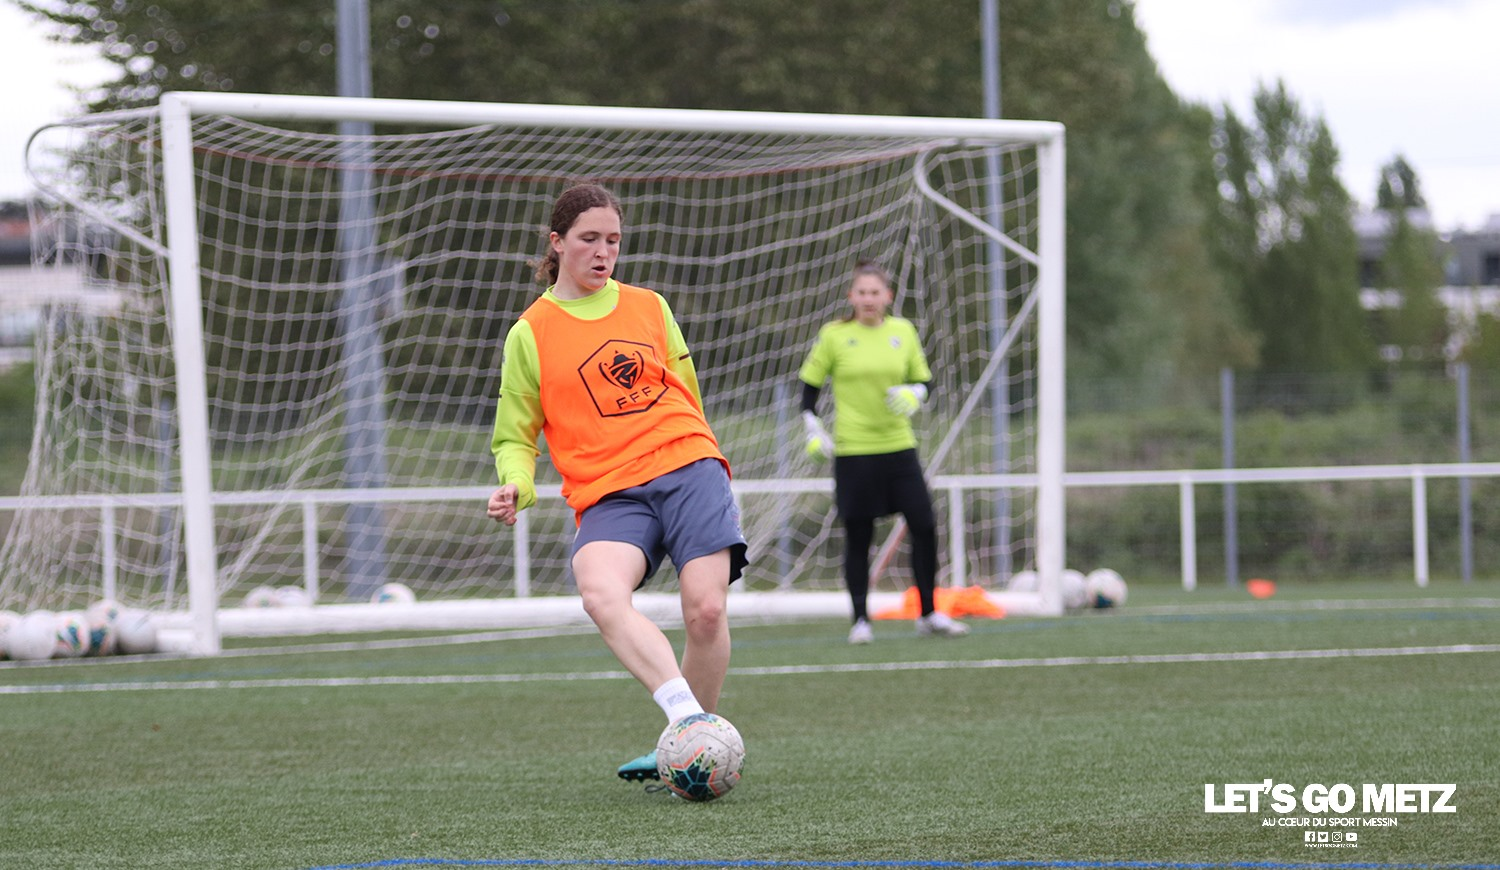 Entrainements_feminines_05_2021_Lauriane_Roth_1